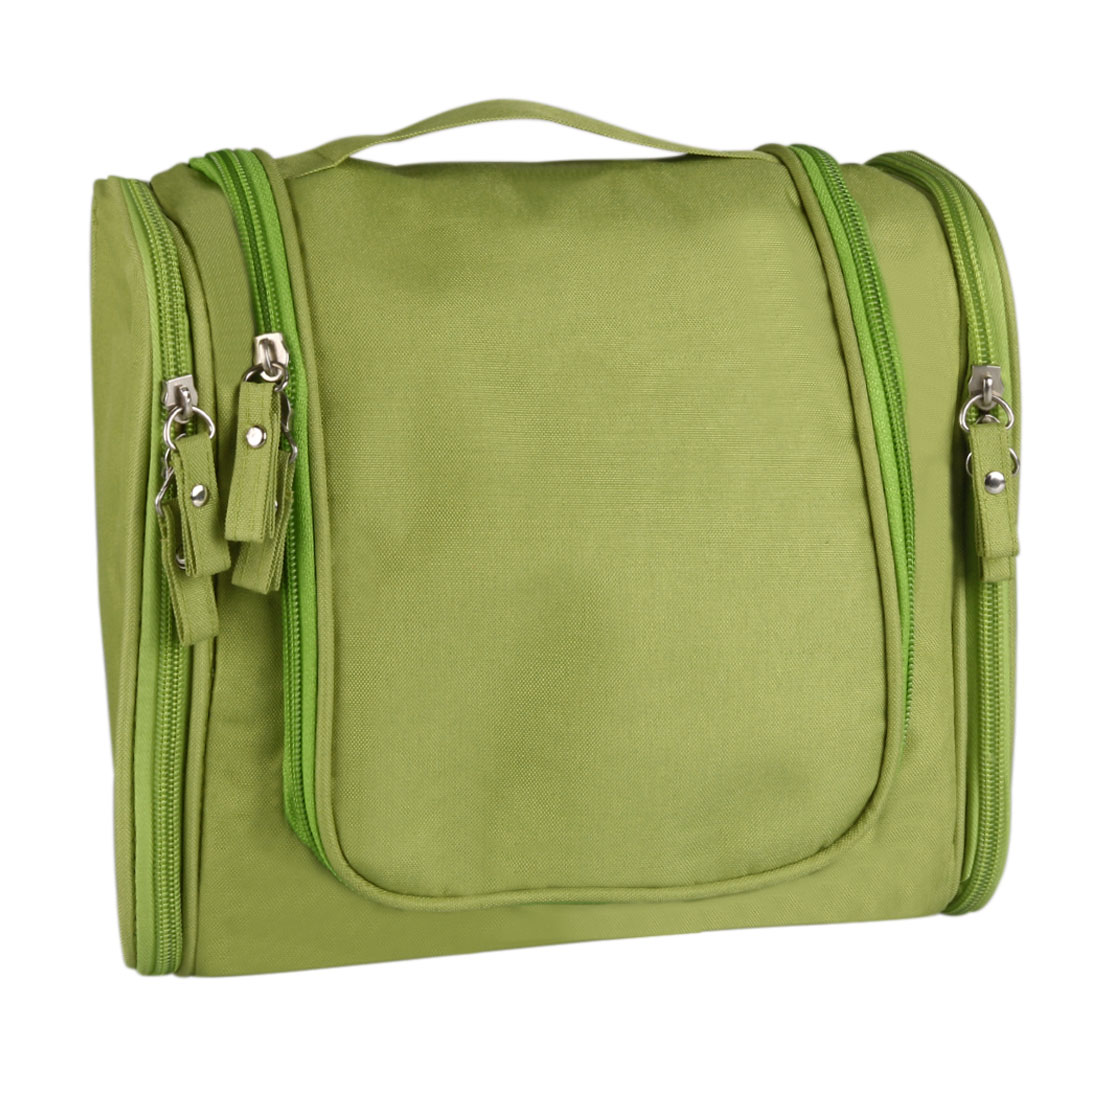 Travel Makeup Cosmetic Toiletry Wash Case Organizer Storage Hanging Bag Green